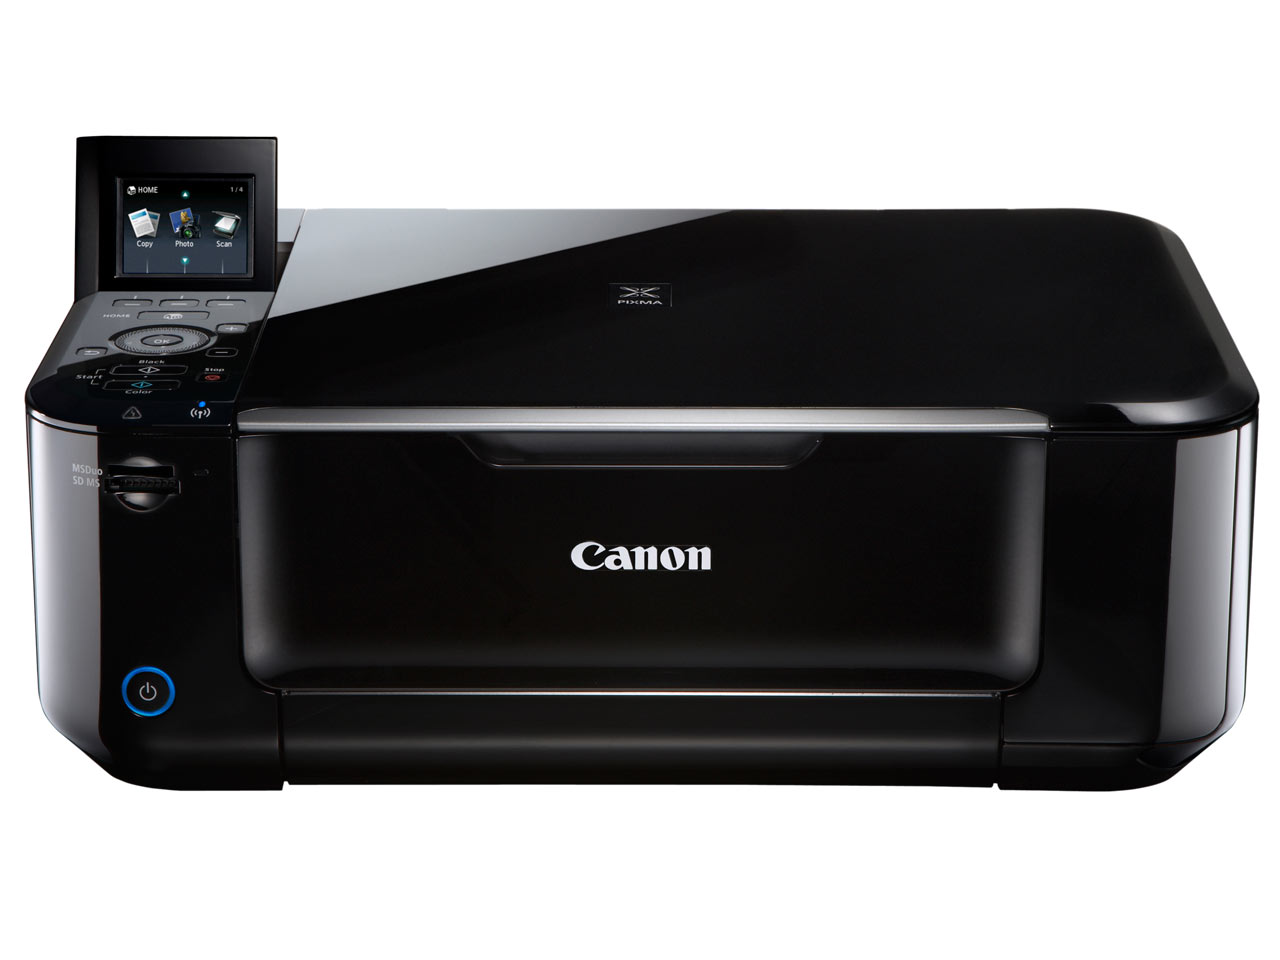 CANON U.S.A. LAUNCHES THREE PIXMA ALL-IN-ONE PHOTO PRINTERS WITH HIGH-END  PRINTING FEATURES AT AN AFFORDABLE PRICE